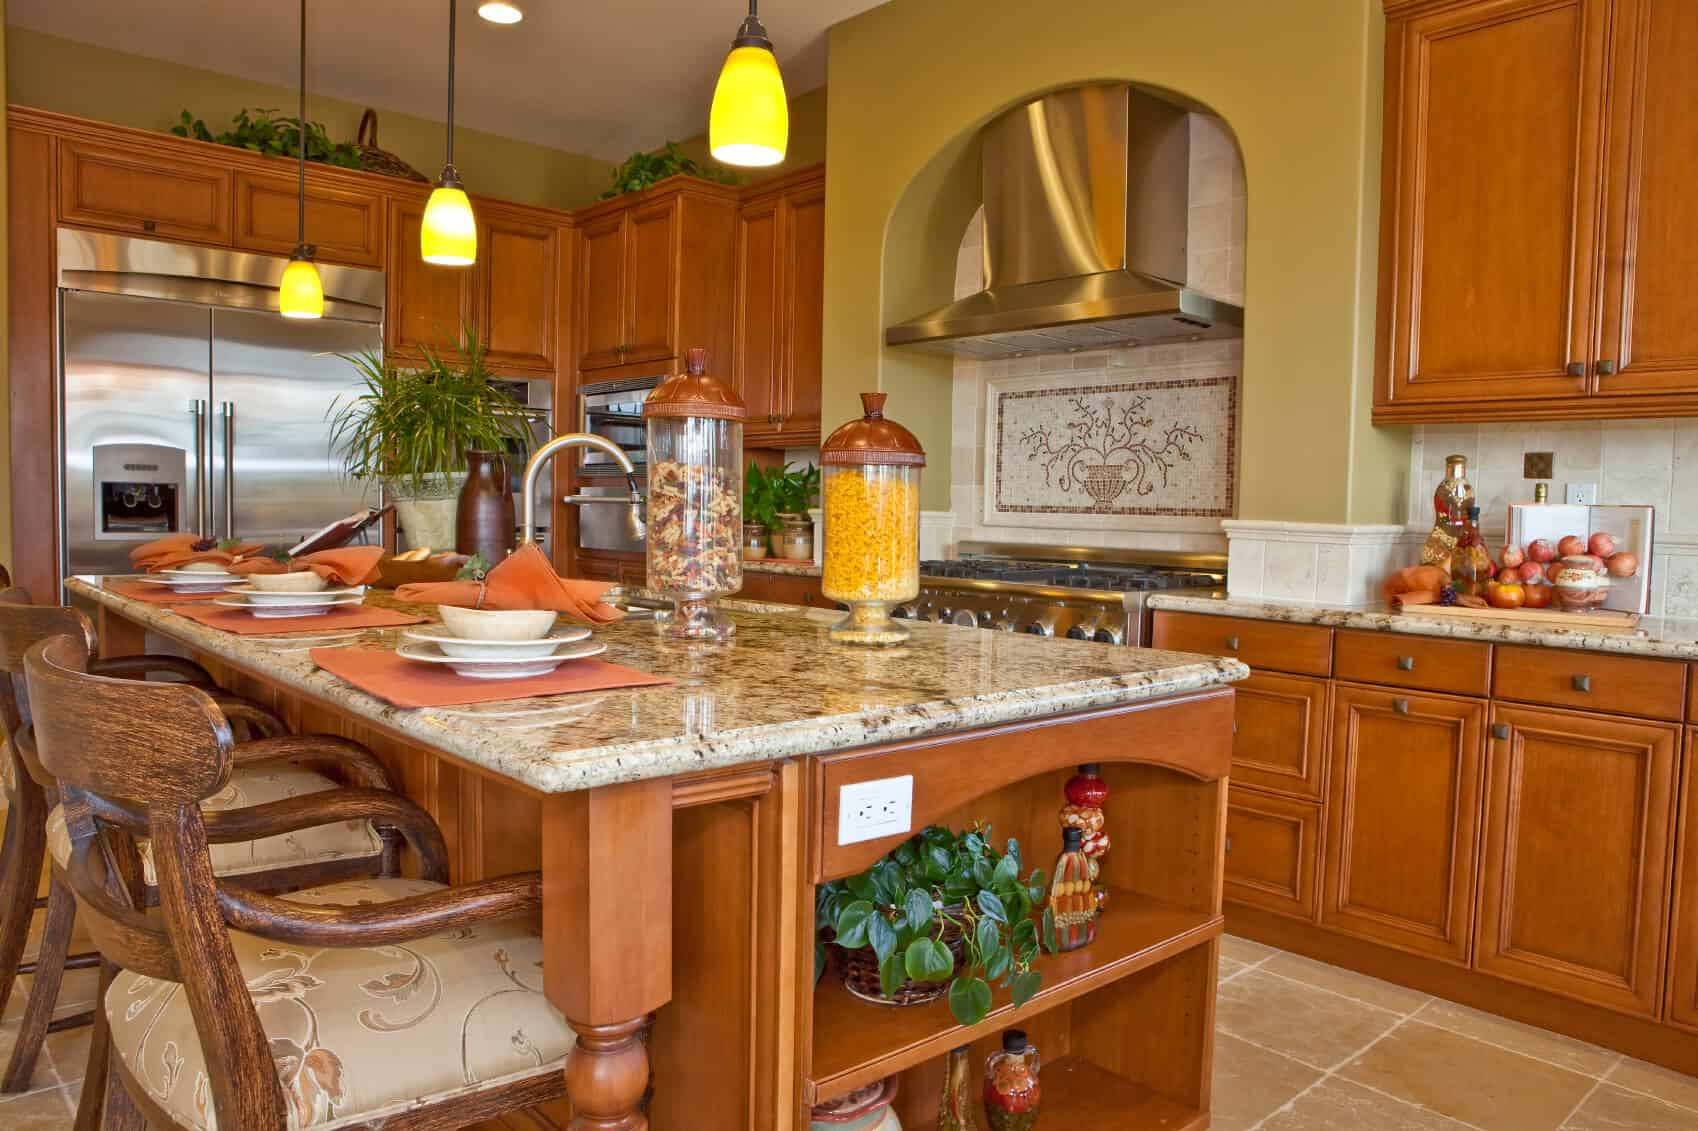 Warm wood tones unify this kitchen featuring large island with ample seating area, built-in shelving and full kitchen sink.